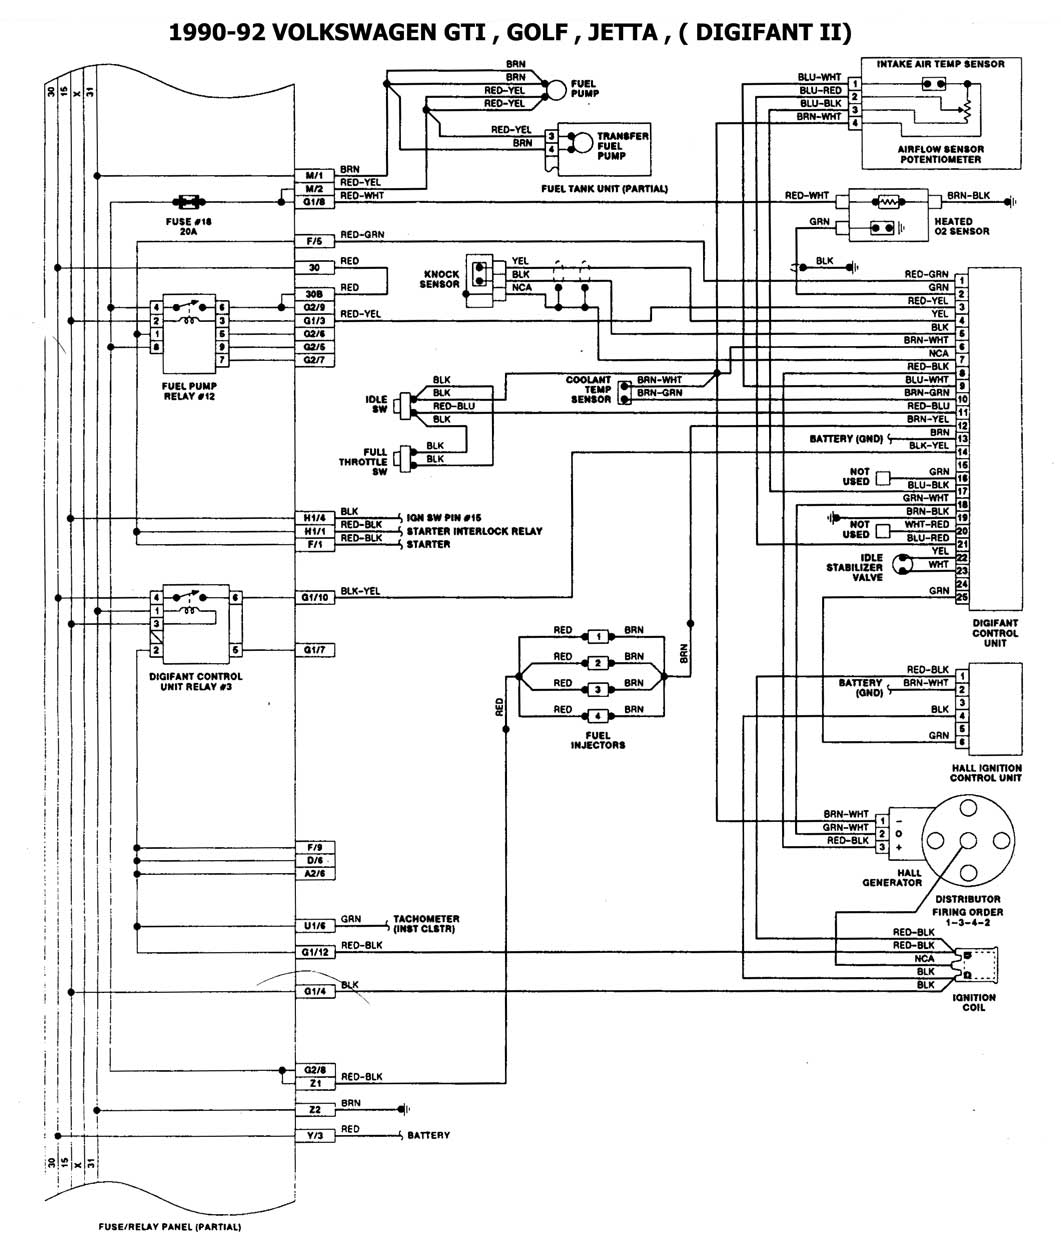 2001 Civic Ecu Wiring Diagram 2001 Civic Motor Wiring